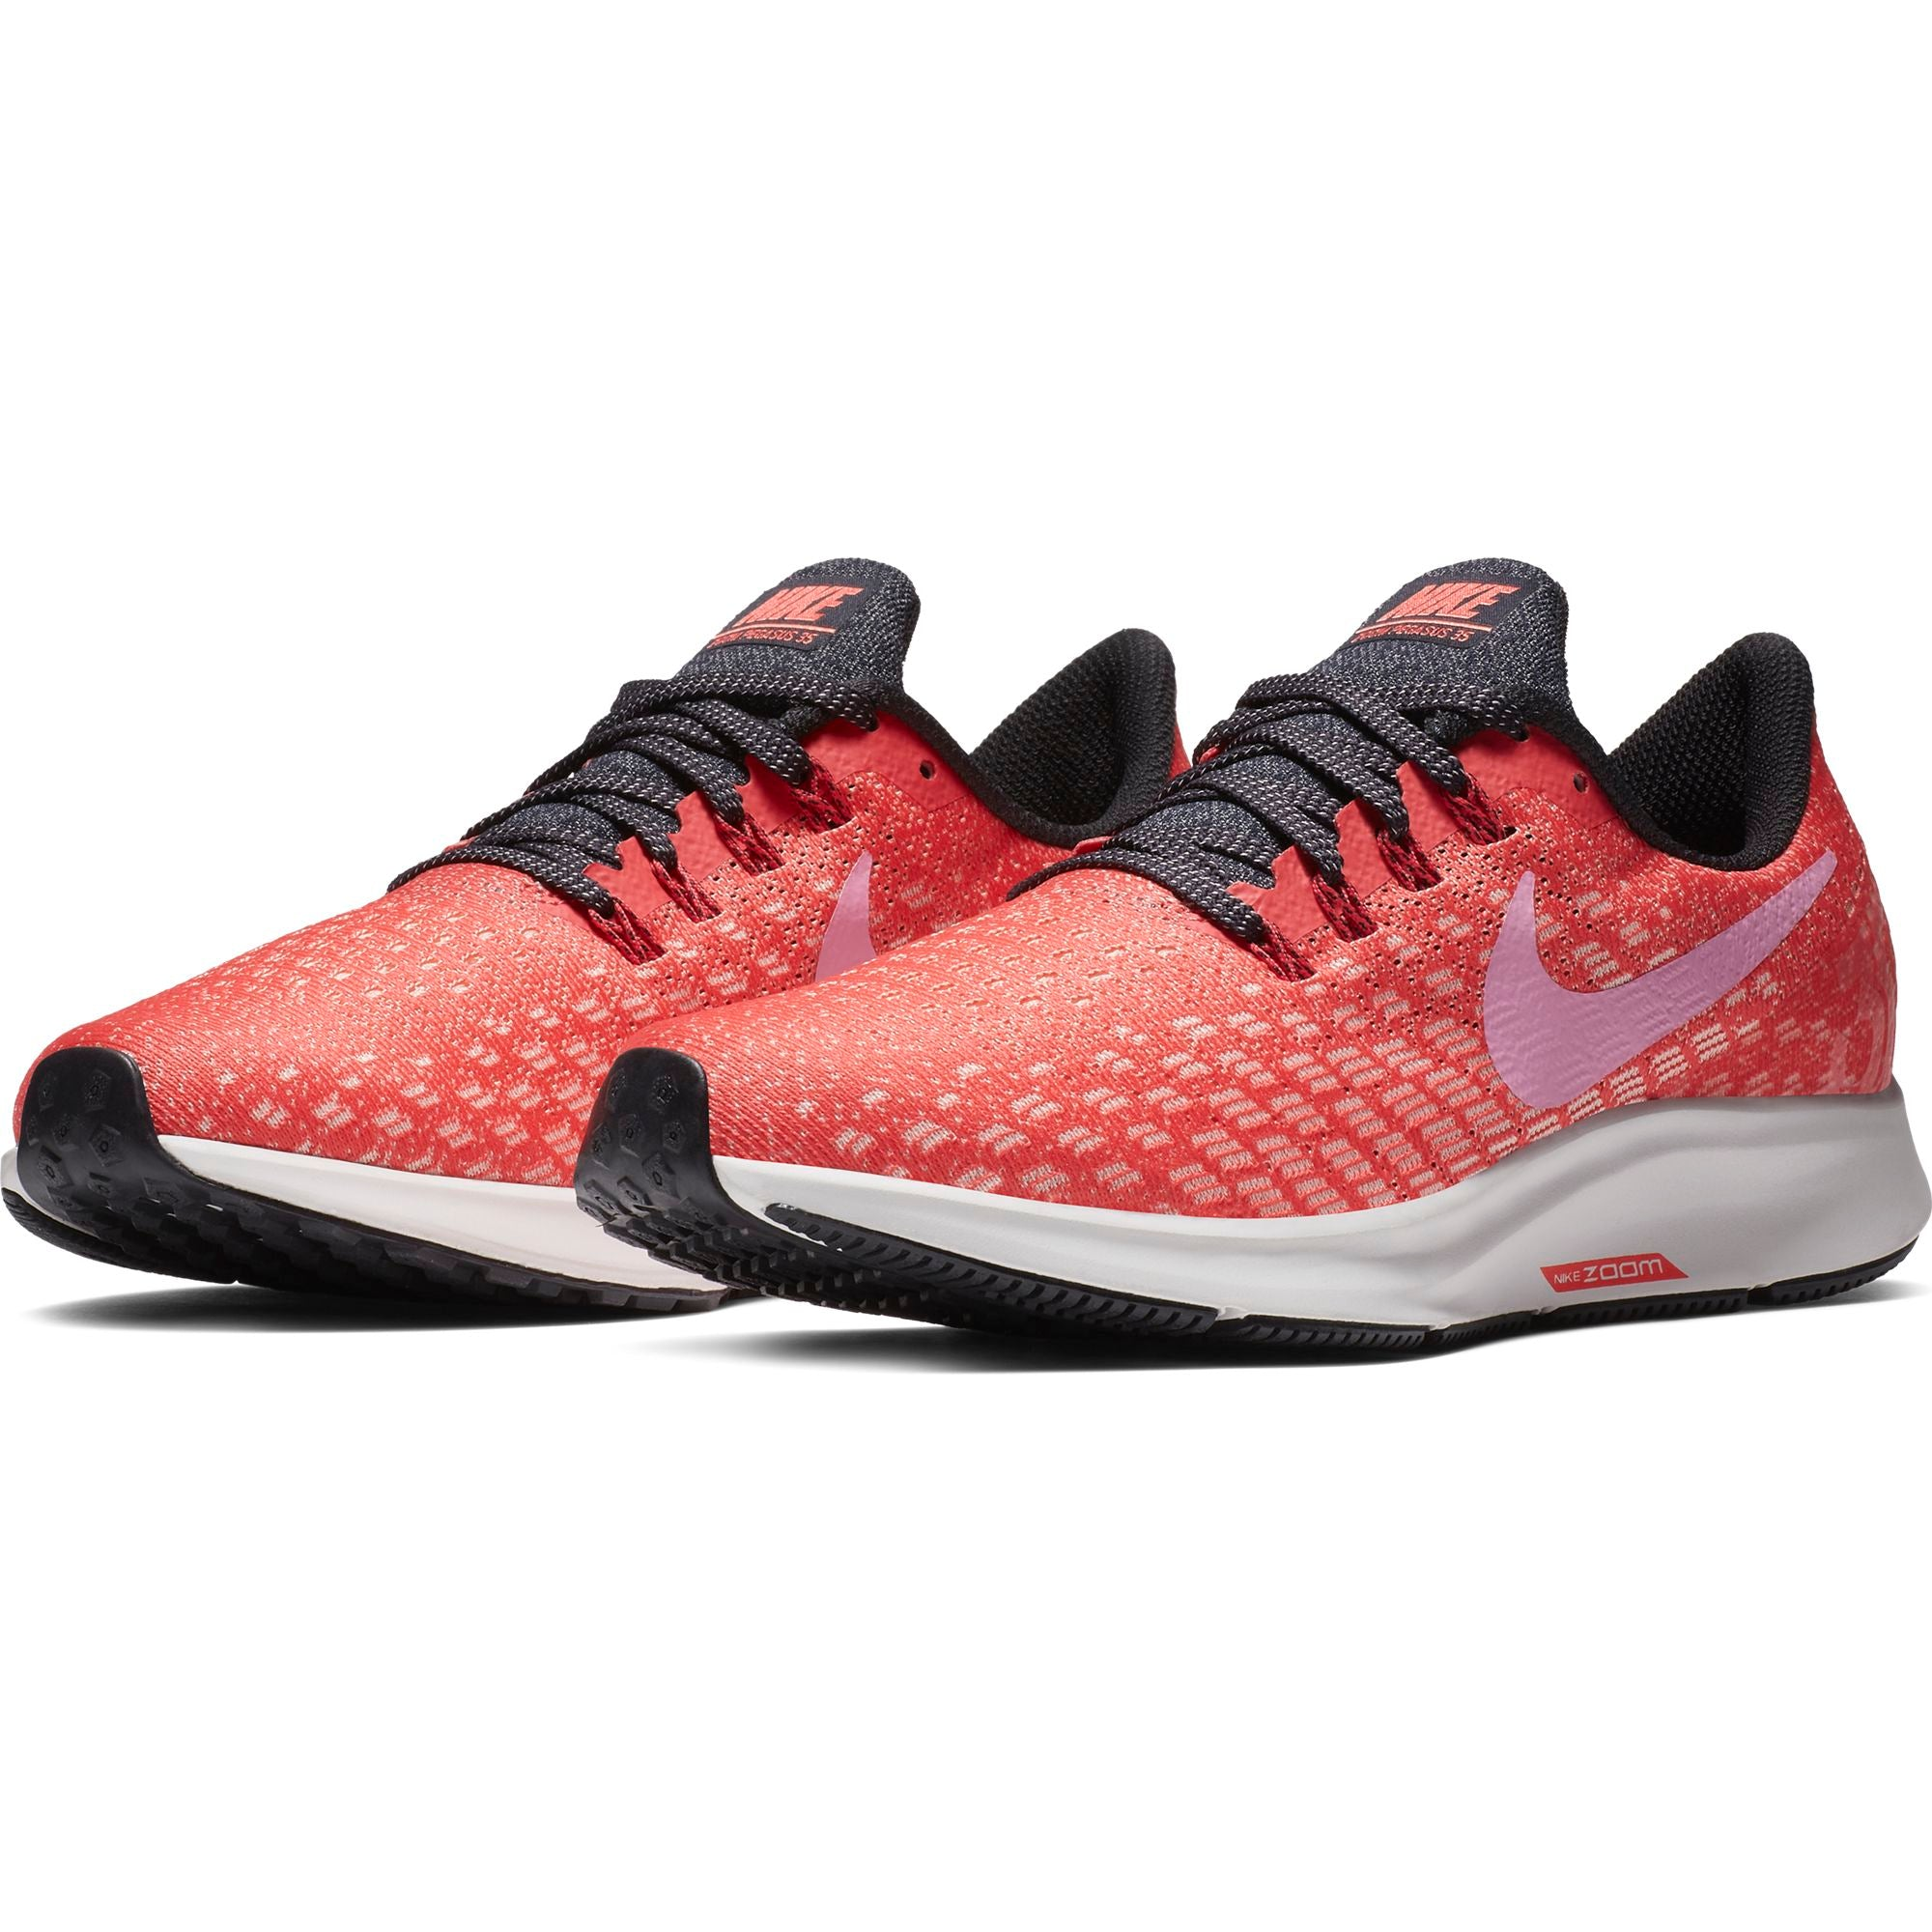 0326e820a99d ... Women s Air Zoom Pegasus 35 Running Shoe - Ember Glow Physic Pink Oil  ...